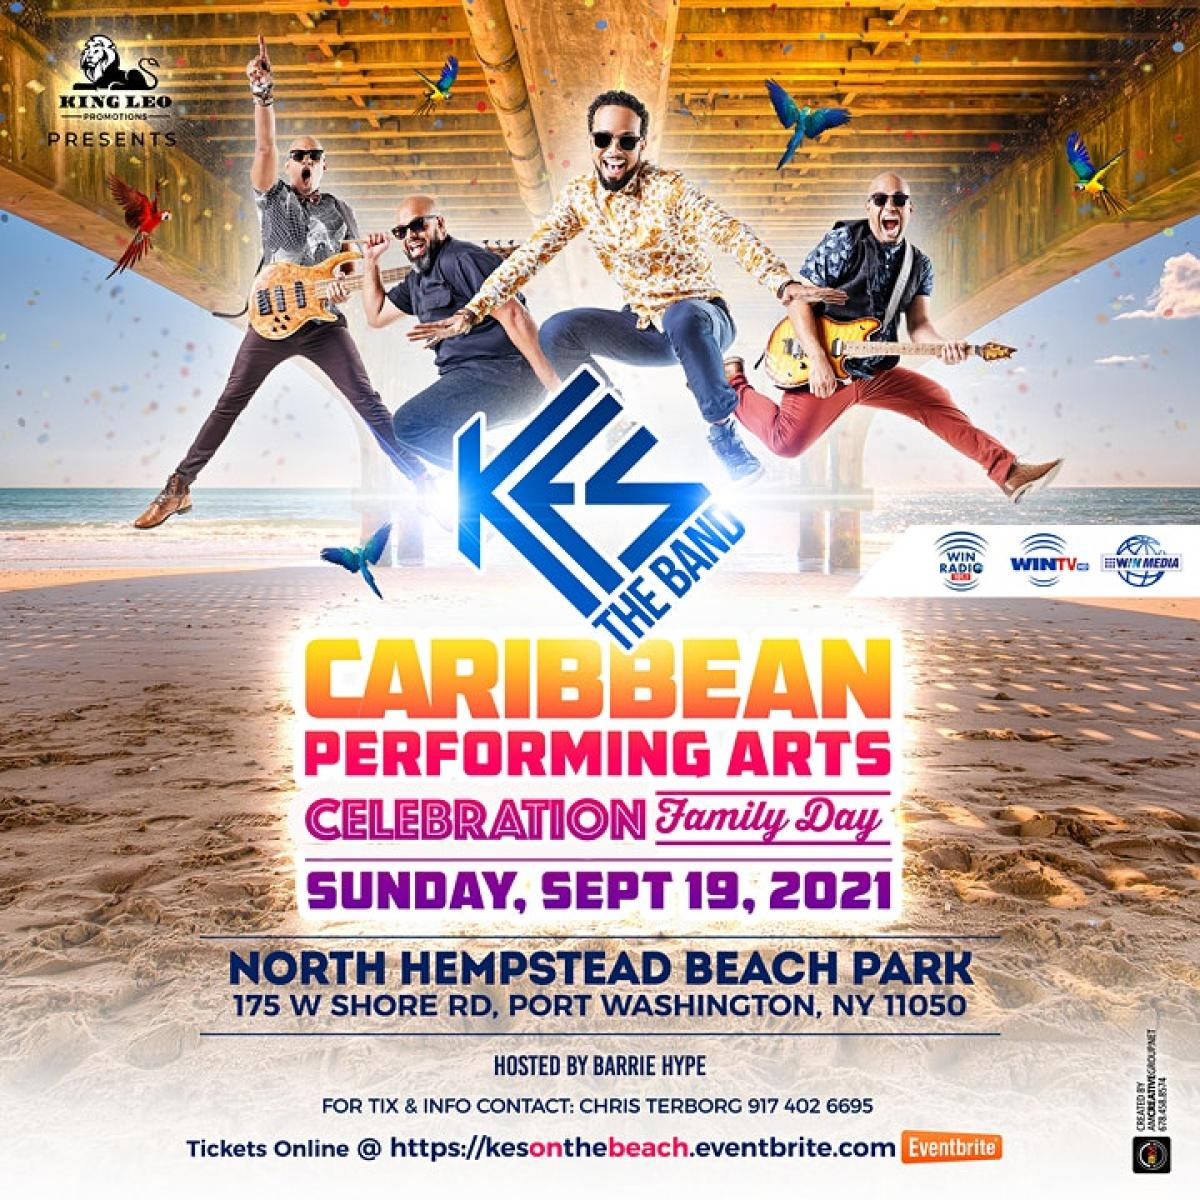 Caribbean Performing Art Concert Family Day flyer or graphic.